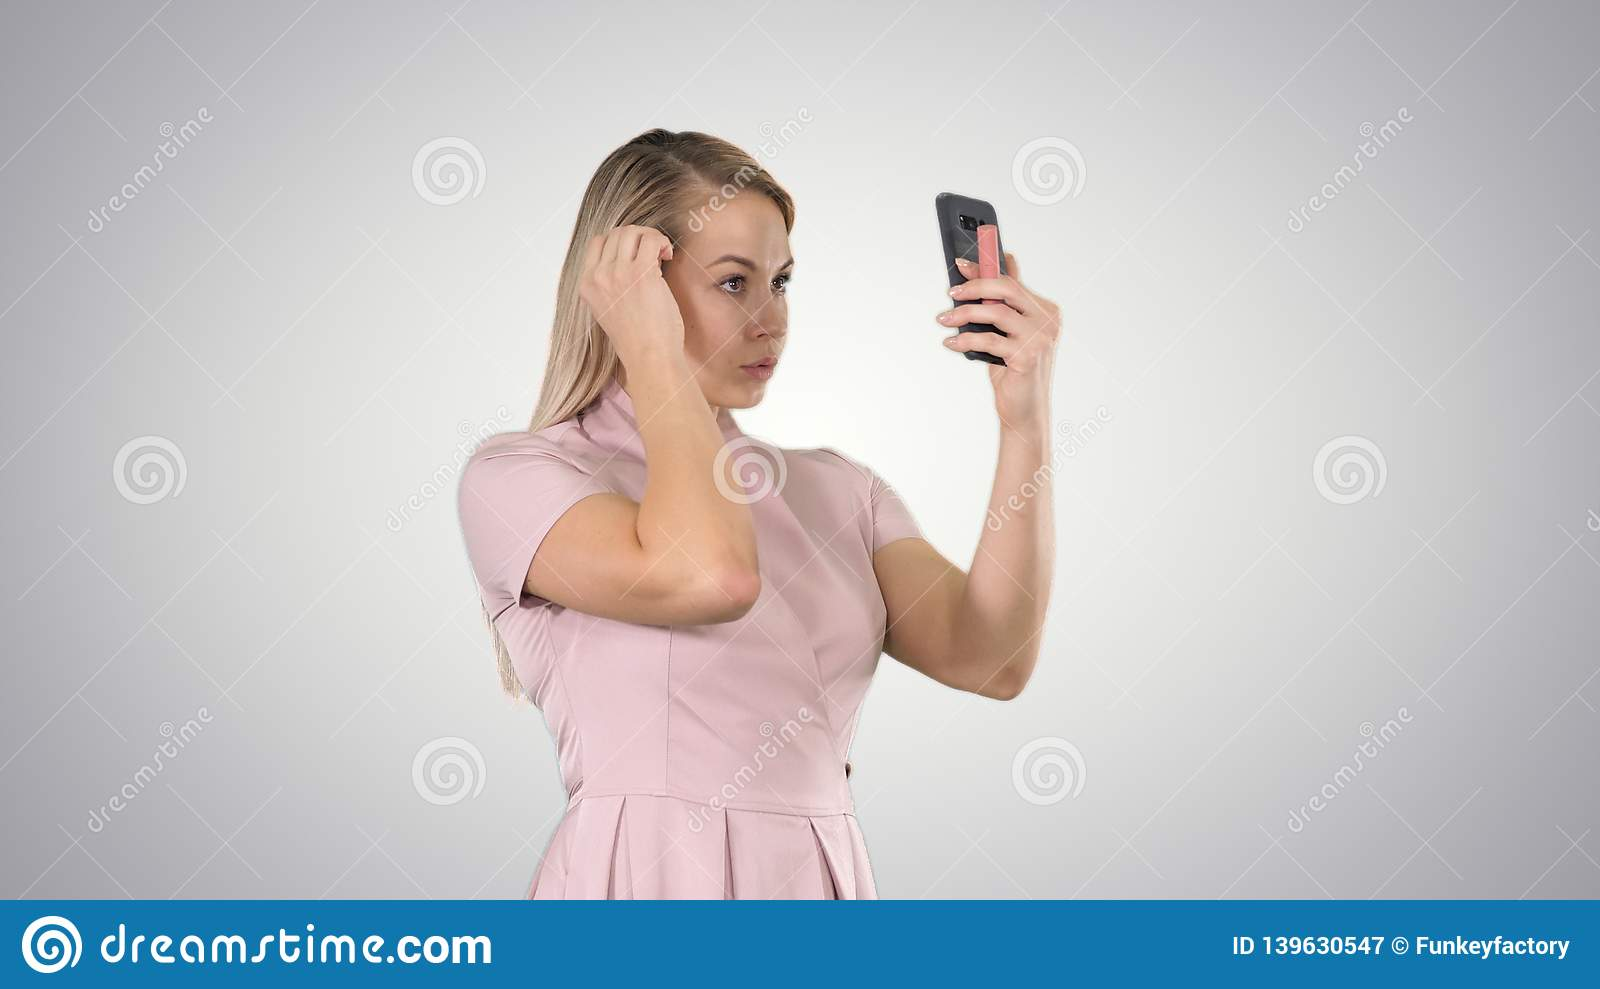 Blonde woman preening in front of the smartphone on gradient background.